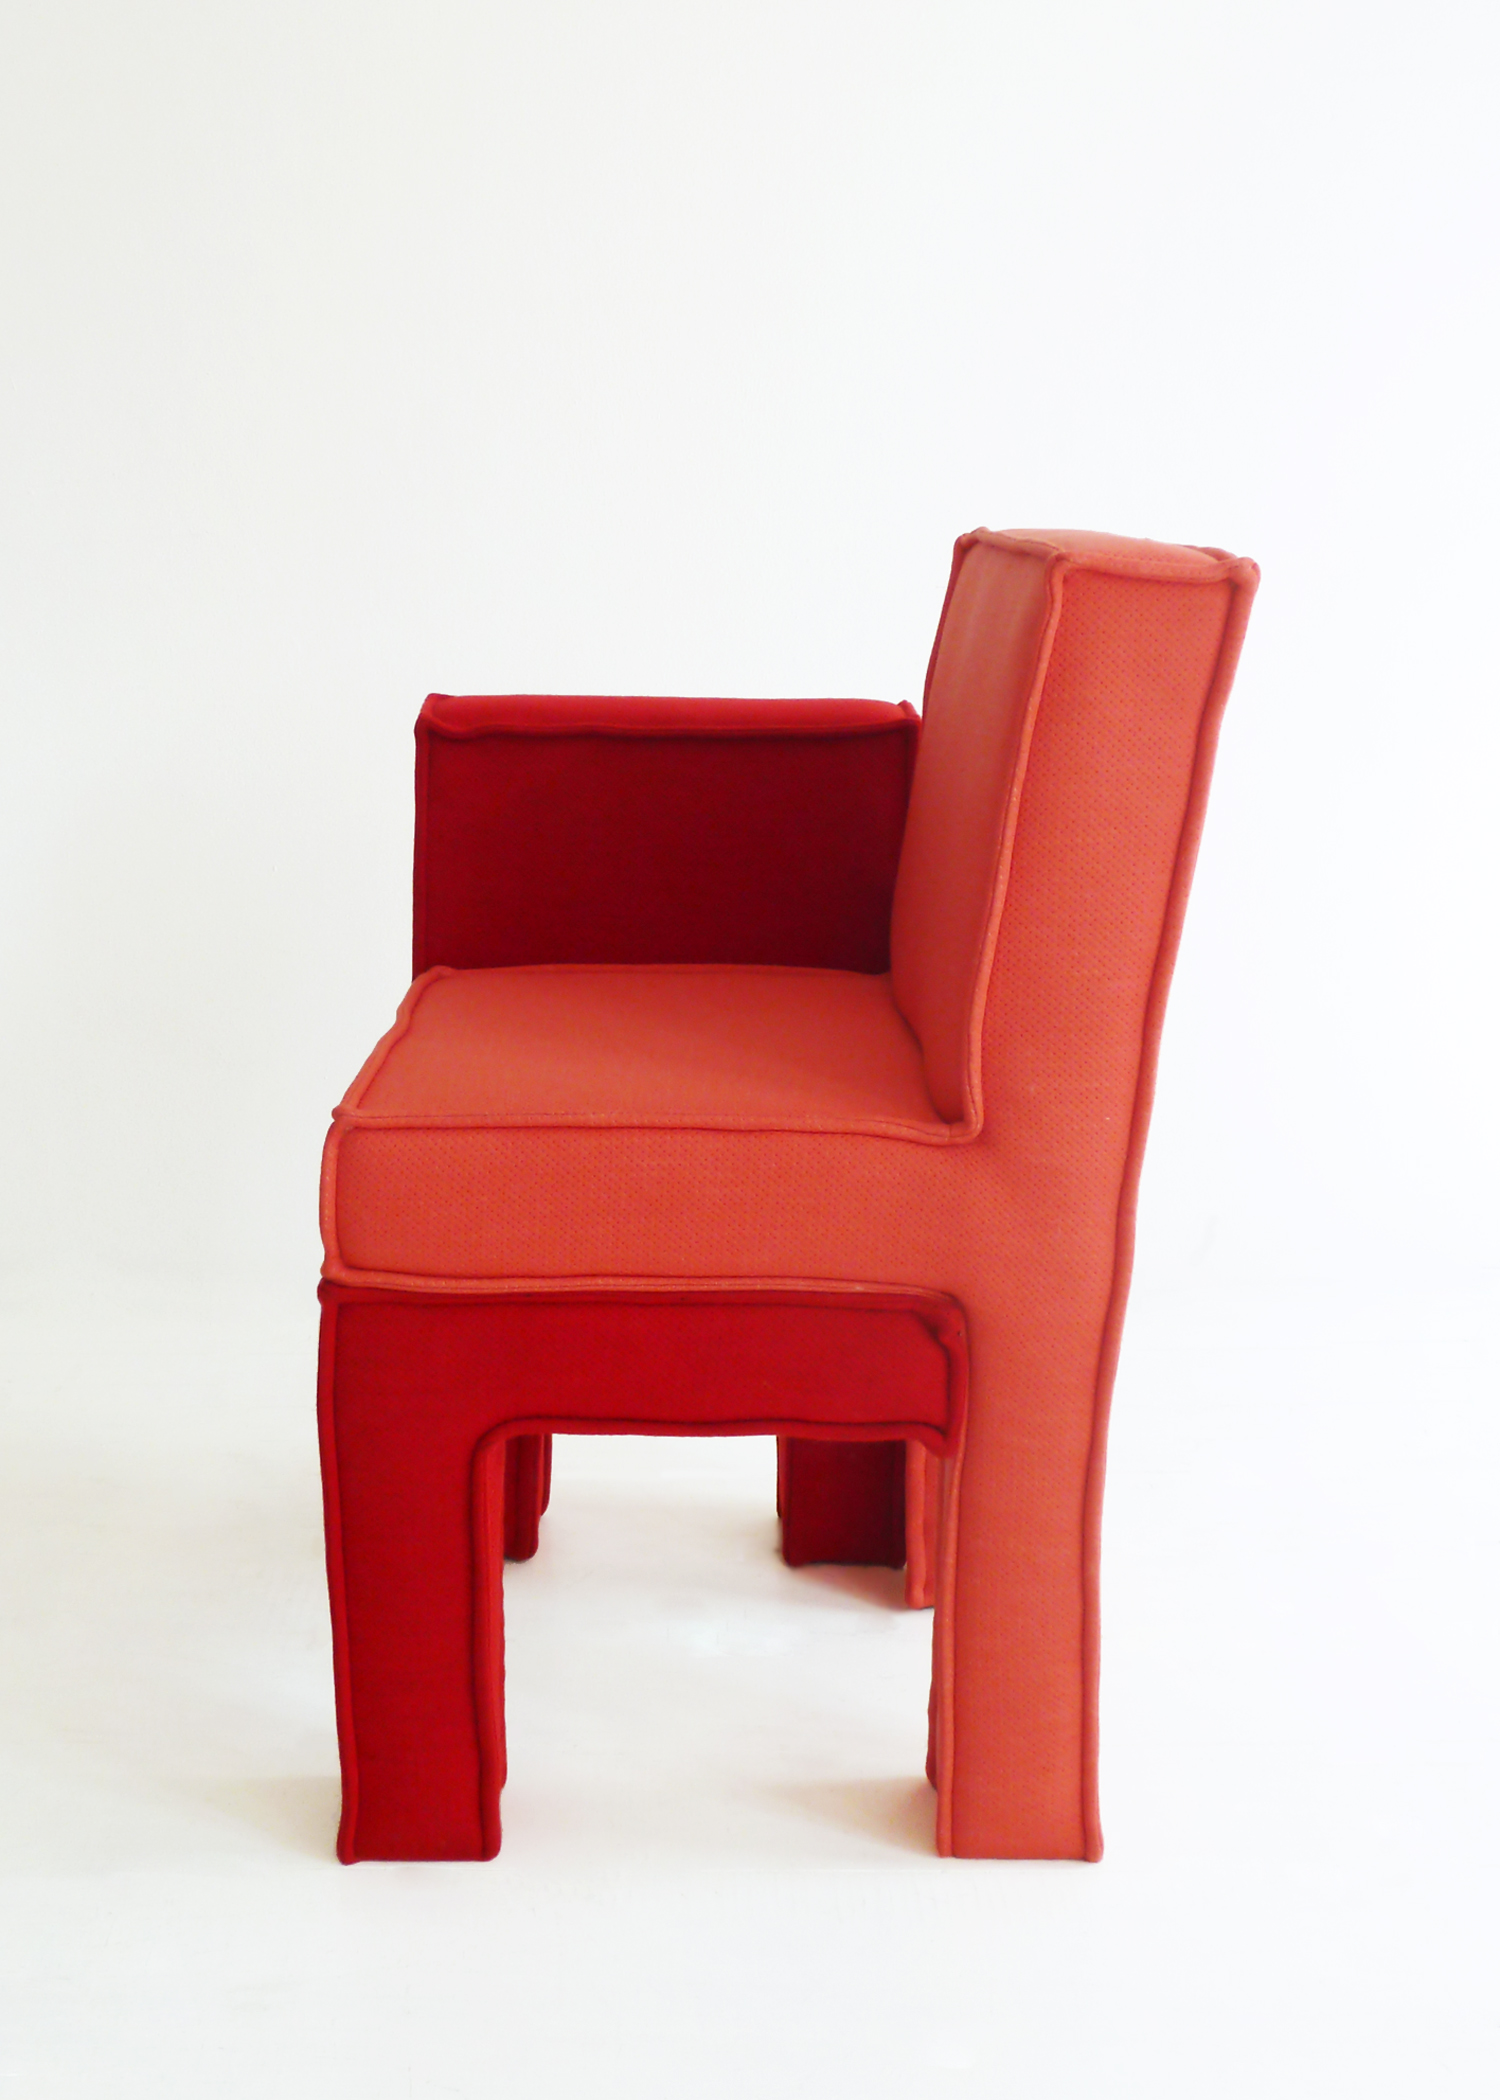 love seat - chair - by annebet philips 3.jpg